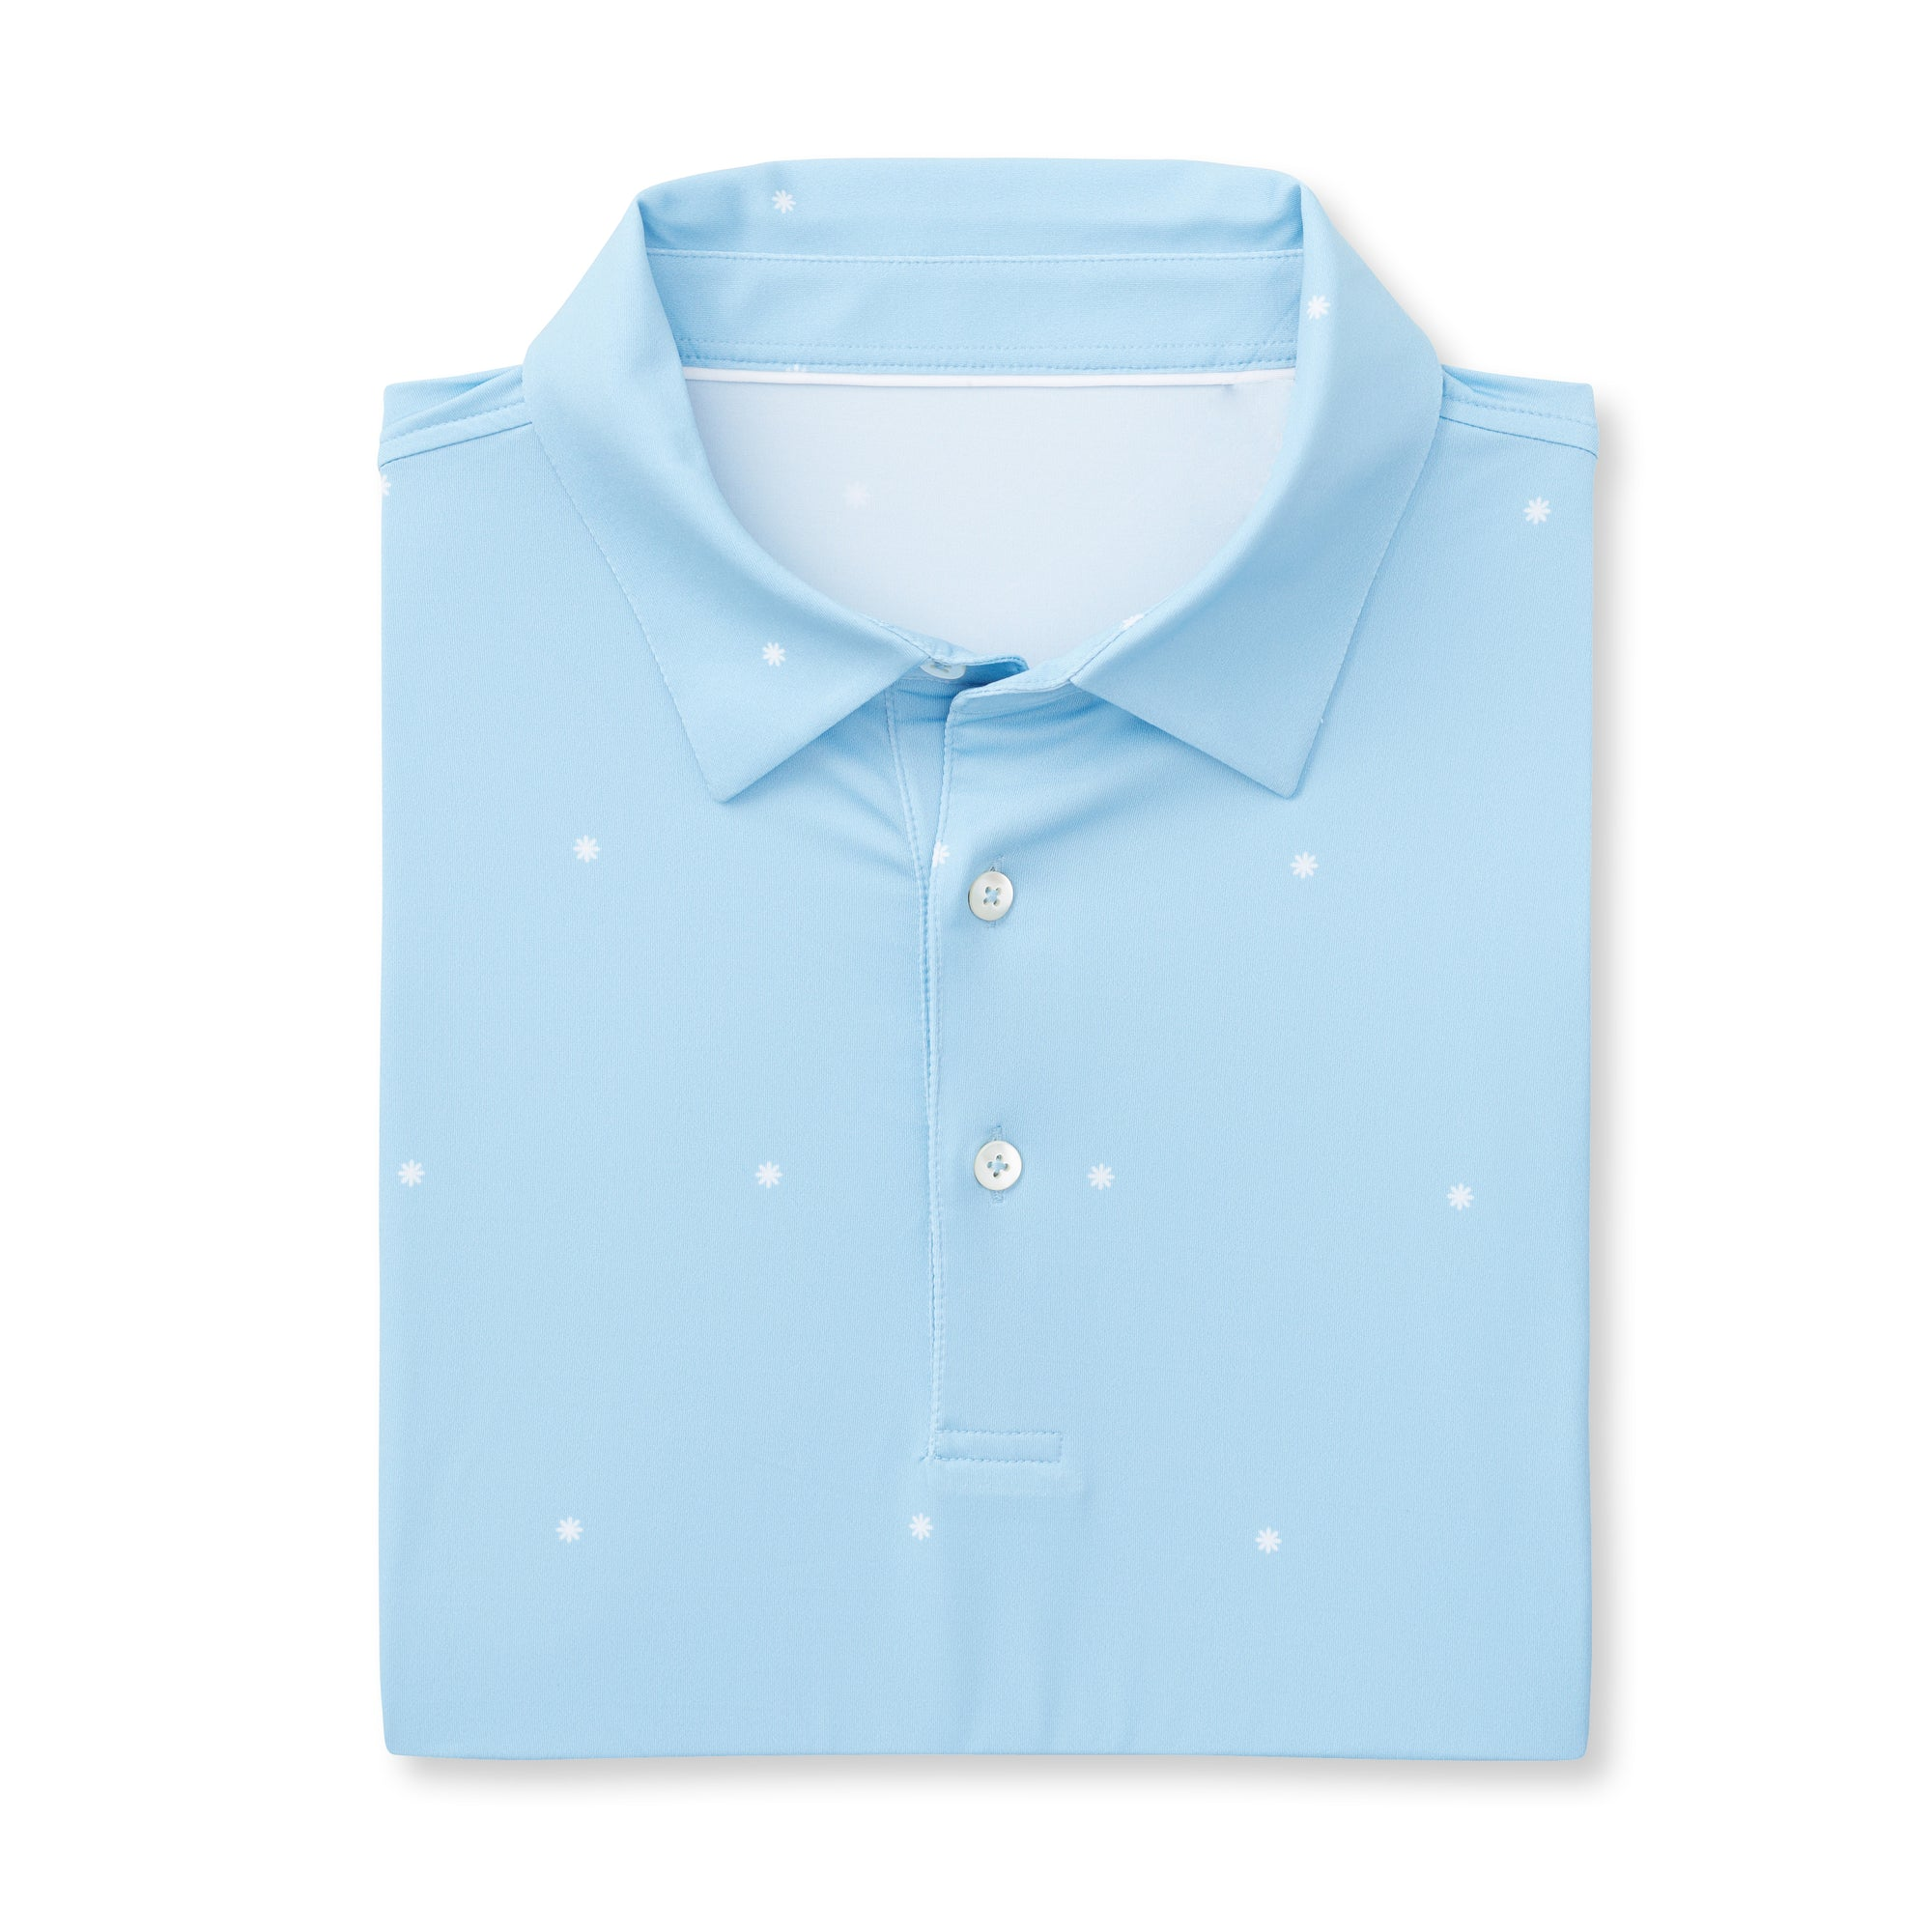 THE LA JOLLA POLO - Maui/White IS06807